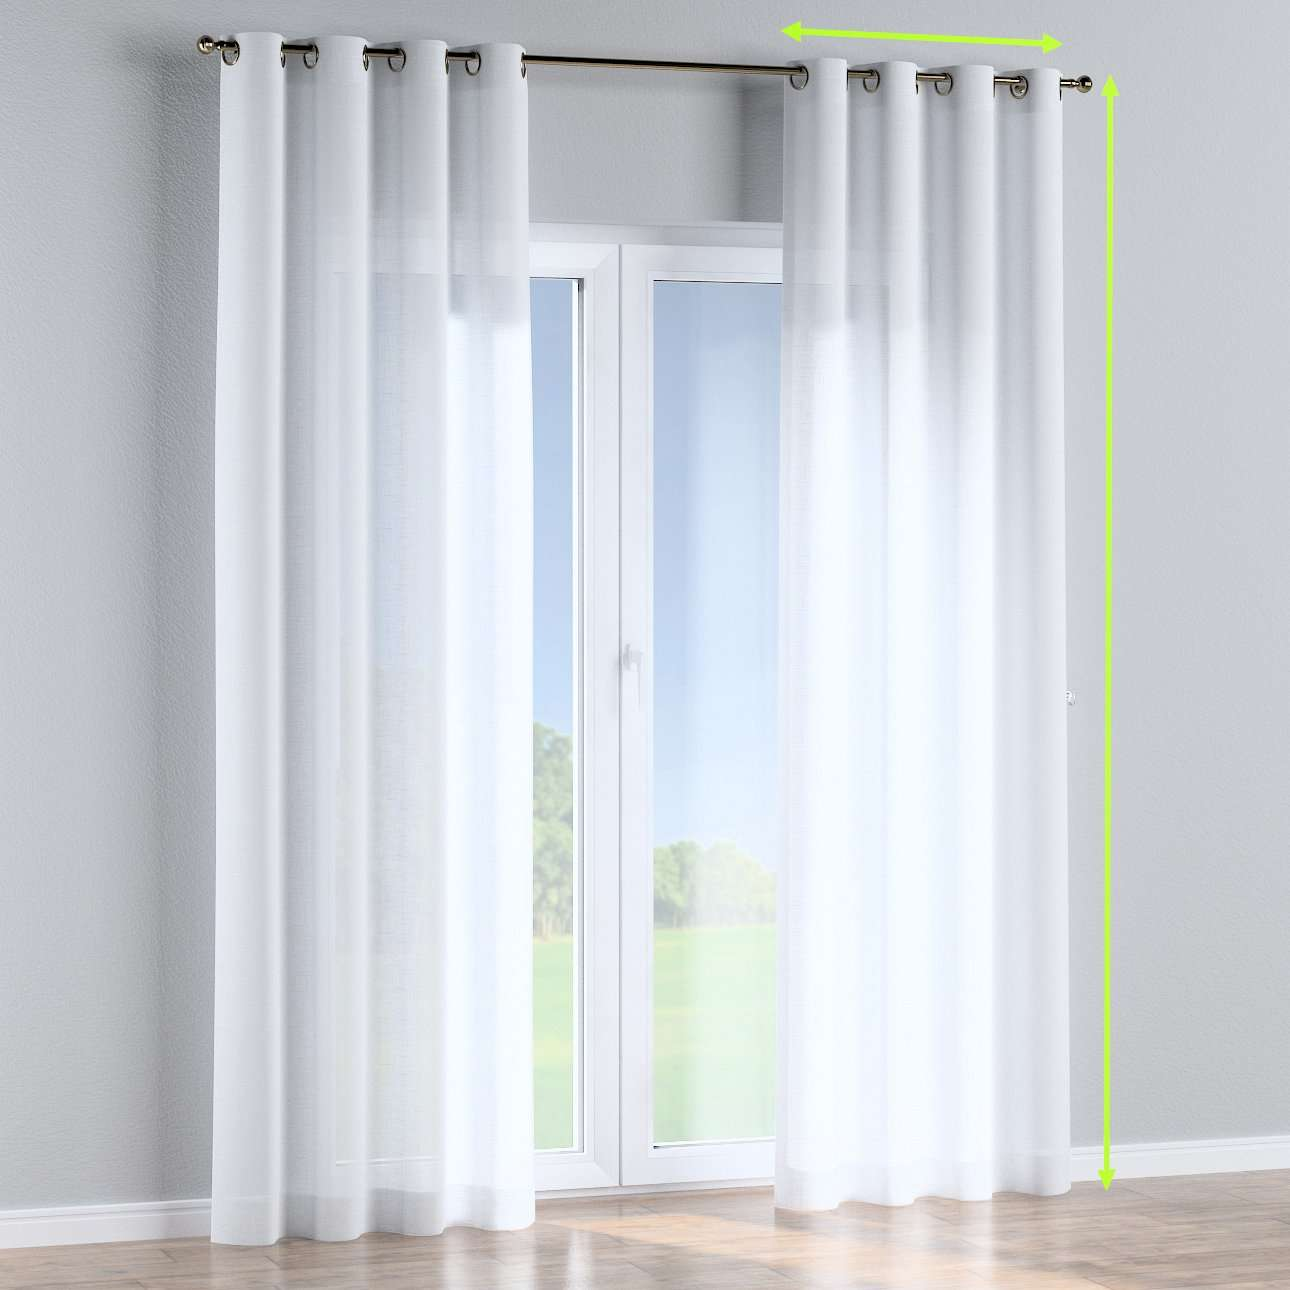 Eyelet curtains in collection Romantica, fabric: 128-77